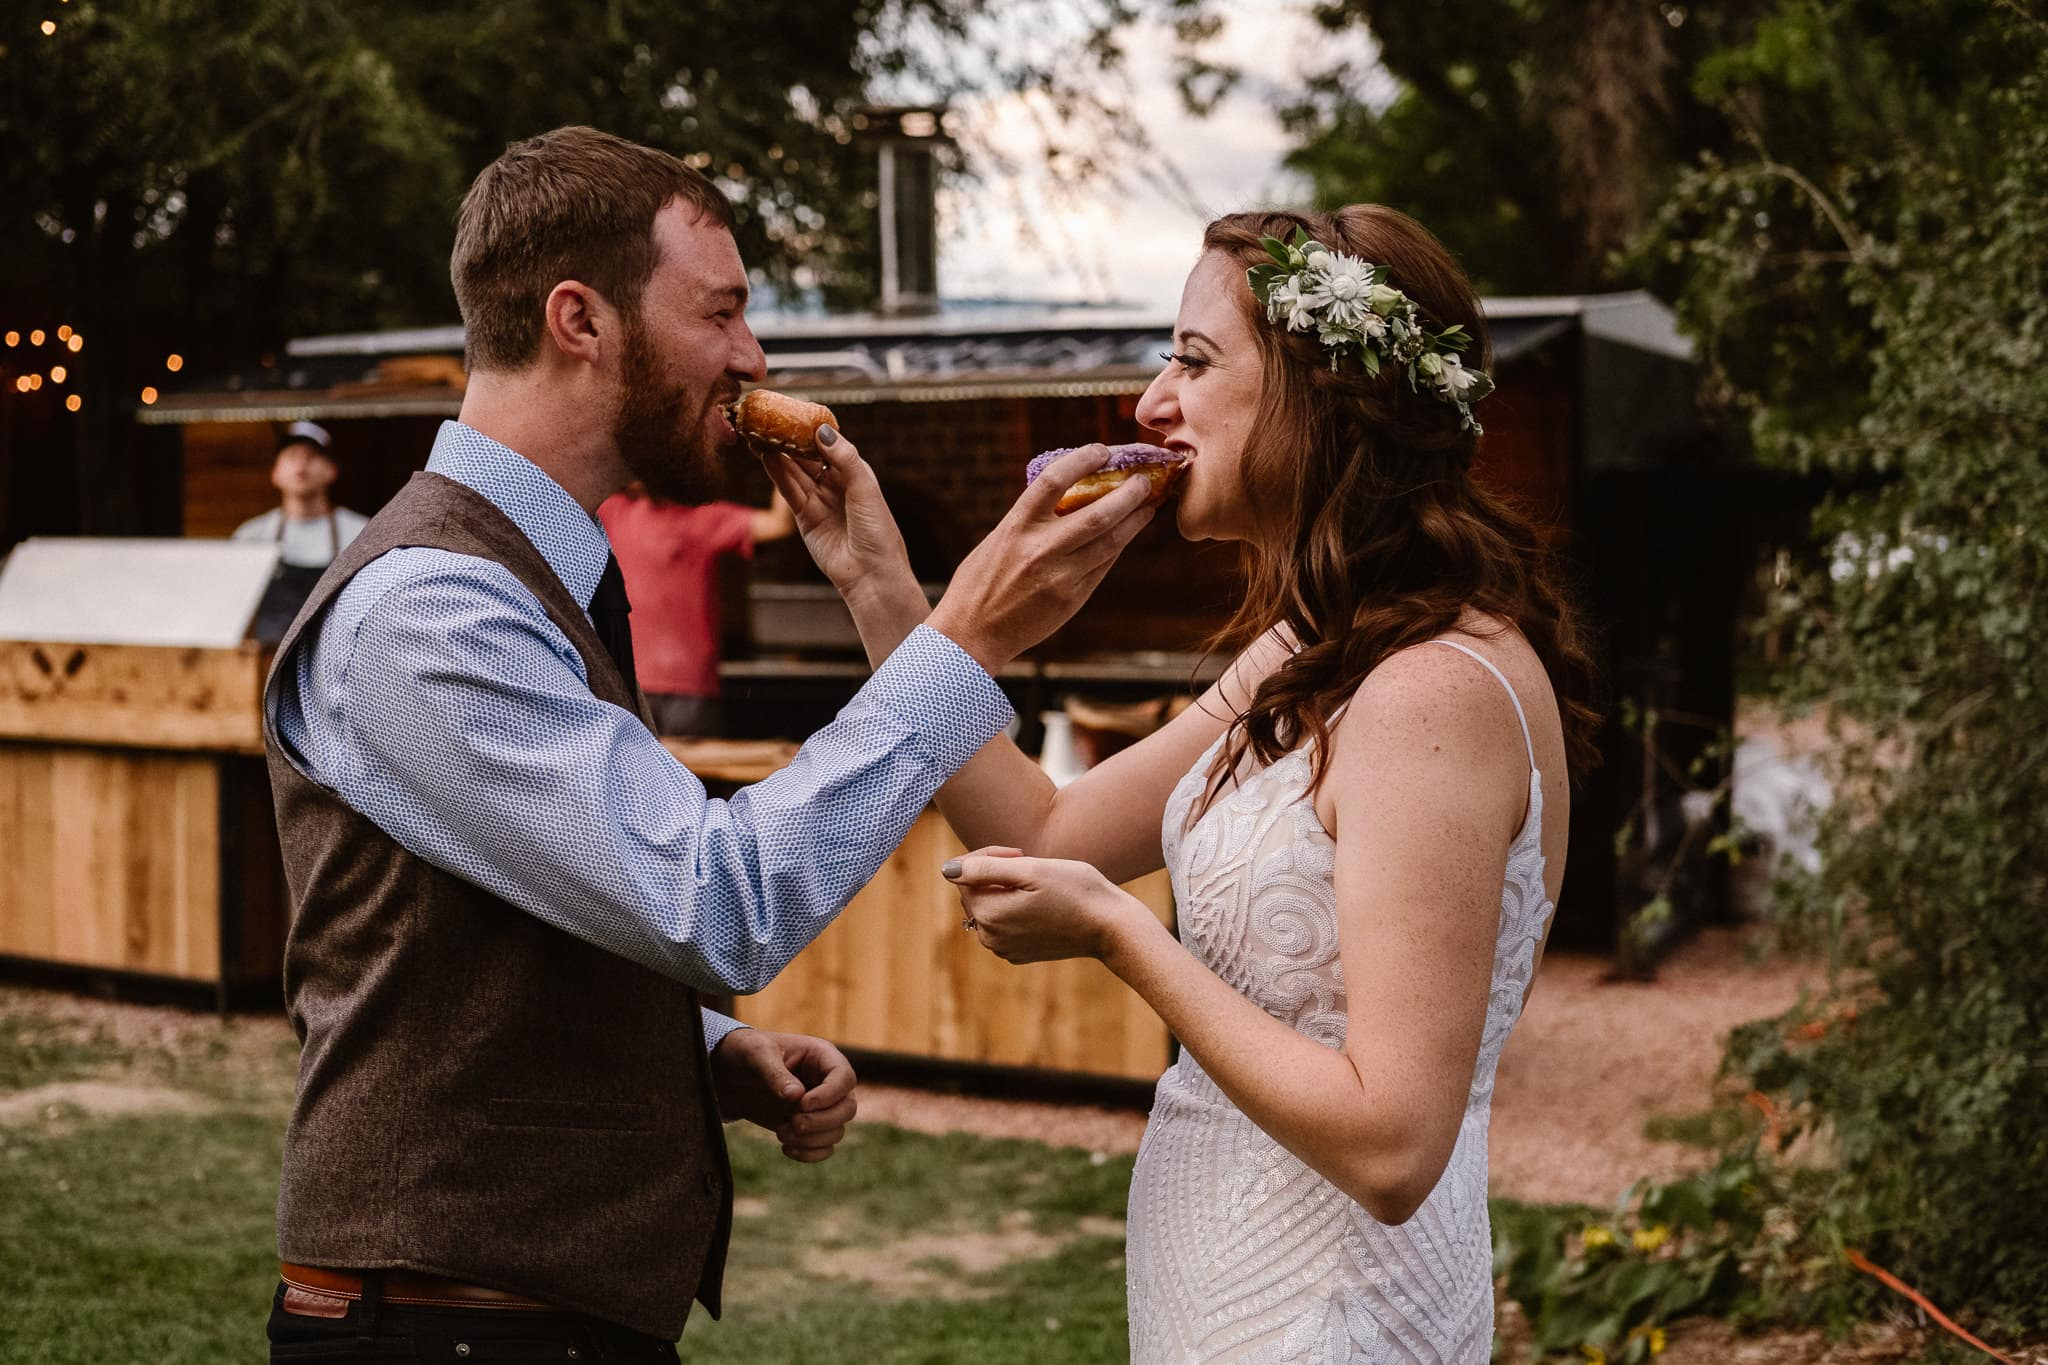 Lyons Farmette wedding photographer, Colorado intimate wedding photographer, wedding donuts by Voodoo Doughnut, bride and groom sharing donut